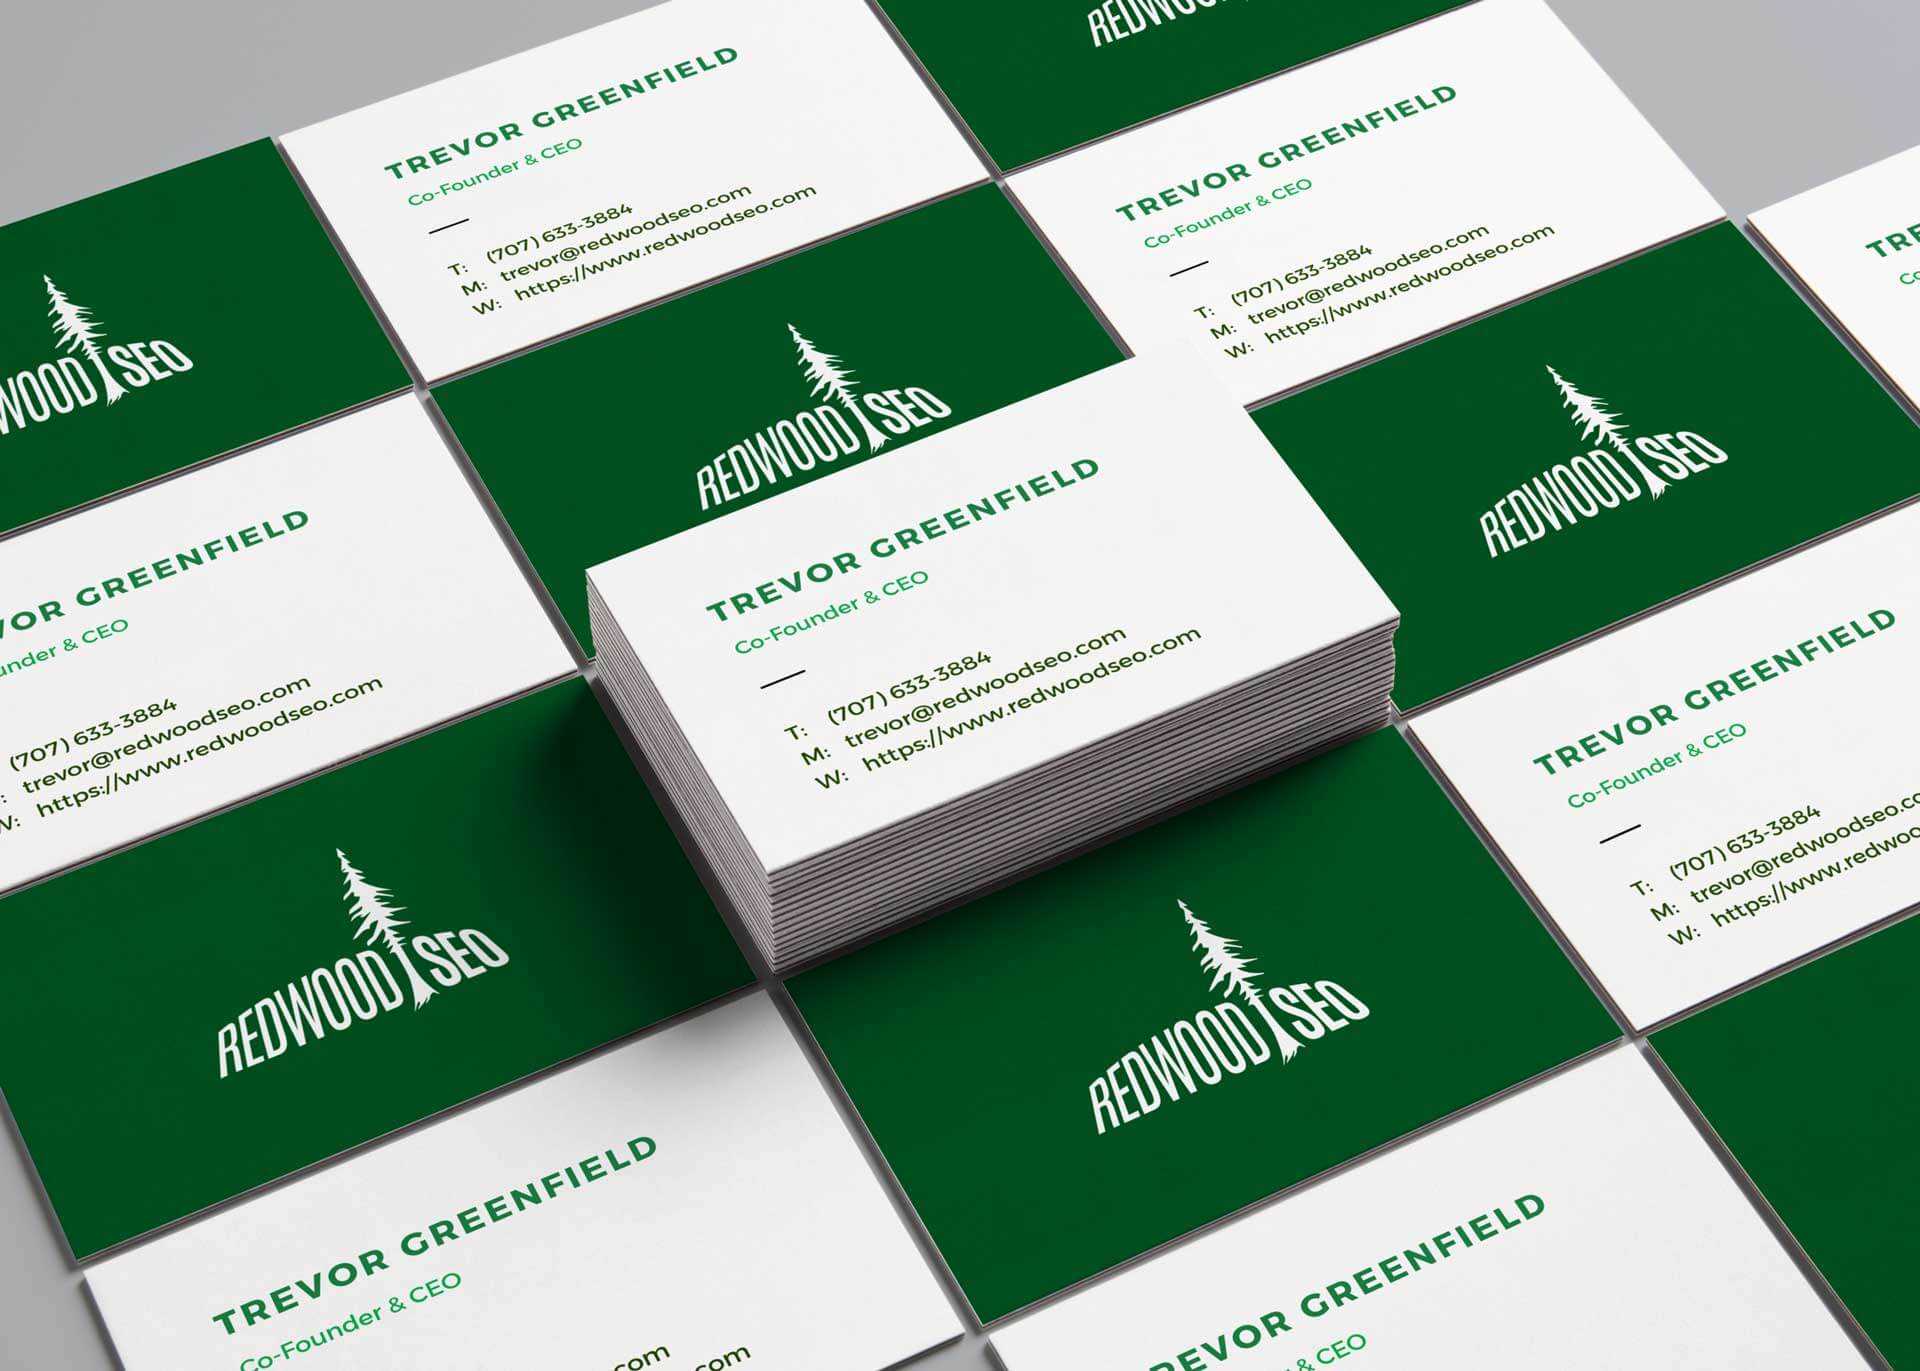 Graphic print design redwood seo redwood seo business cards image colourmoves